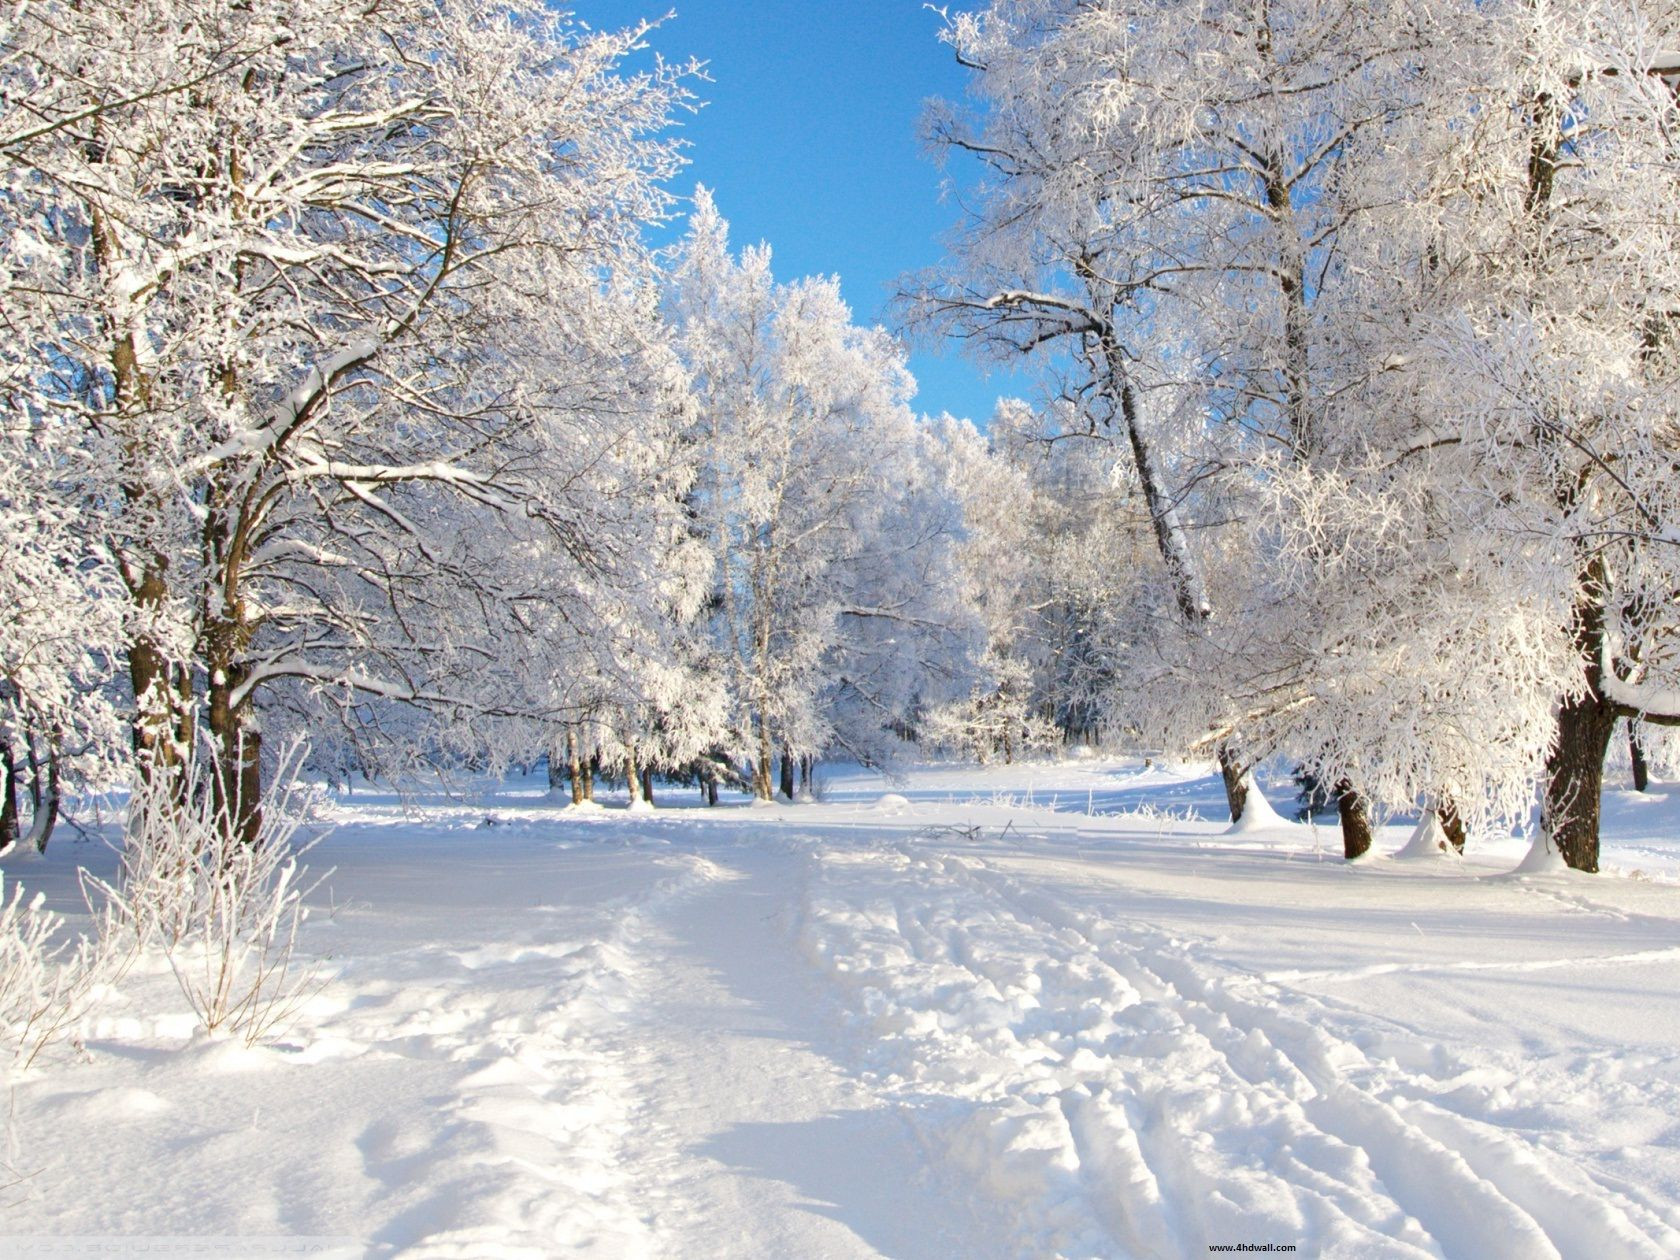 Free Wallpaper Downloads   Download Free High Definition Winter Wallpapers   Hd Wallpapers ...